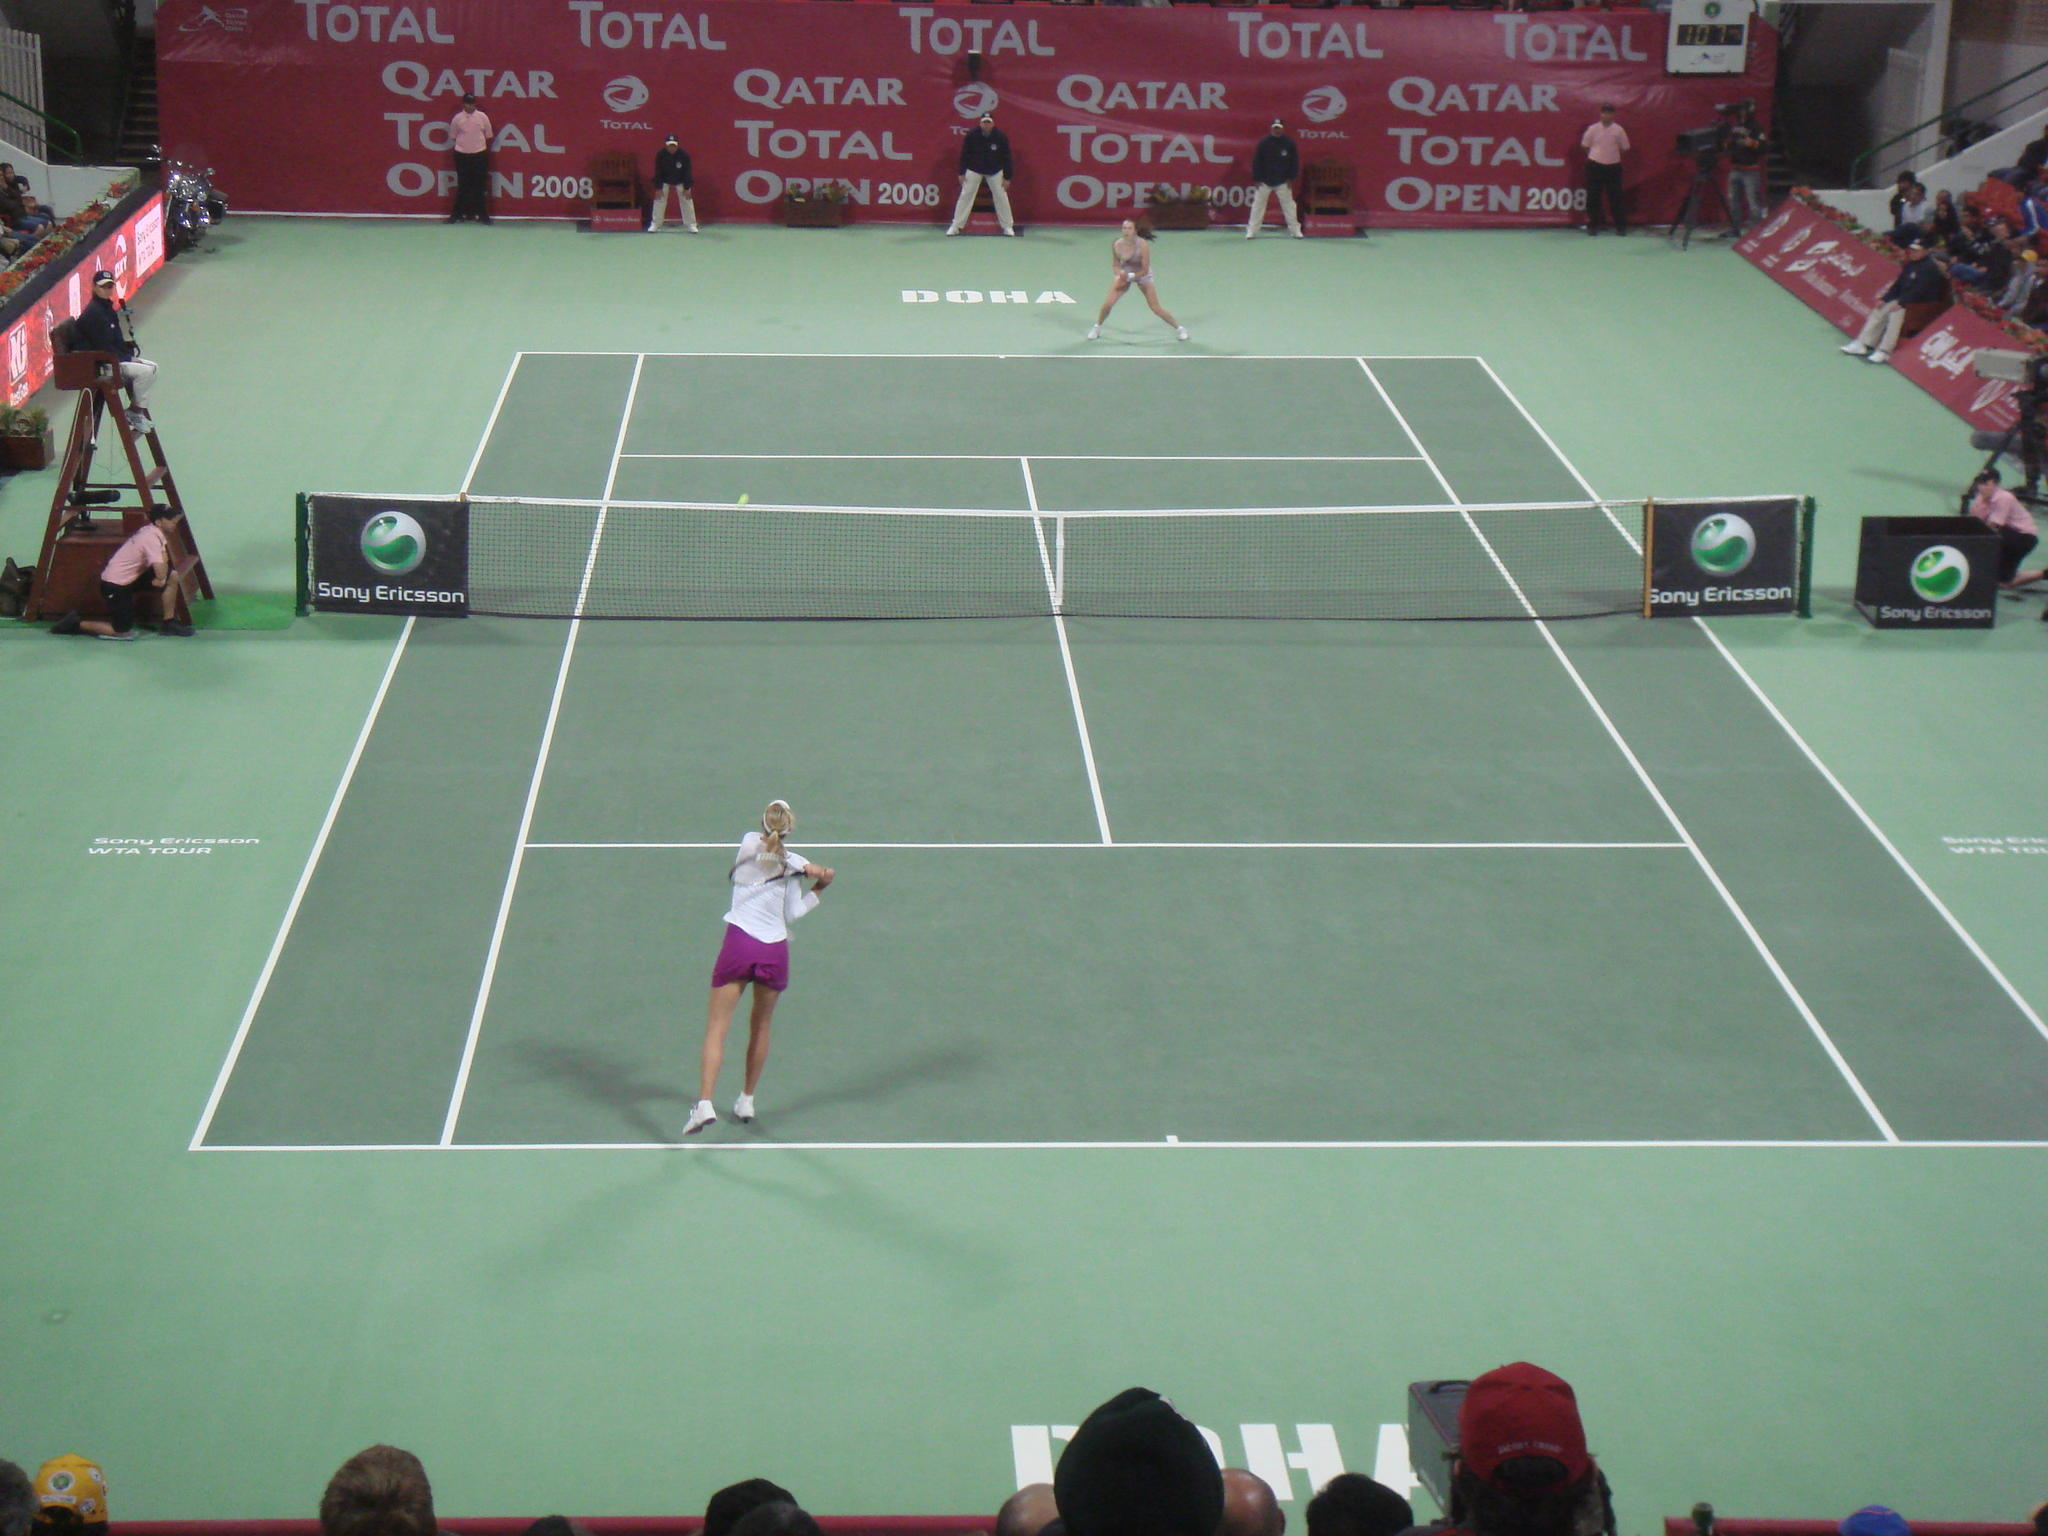 Qatar Total Open 2回戦